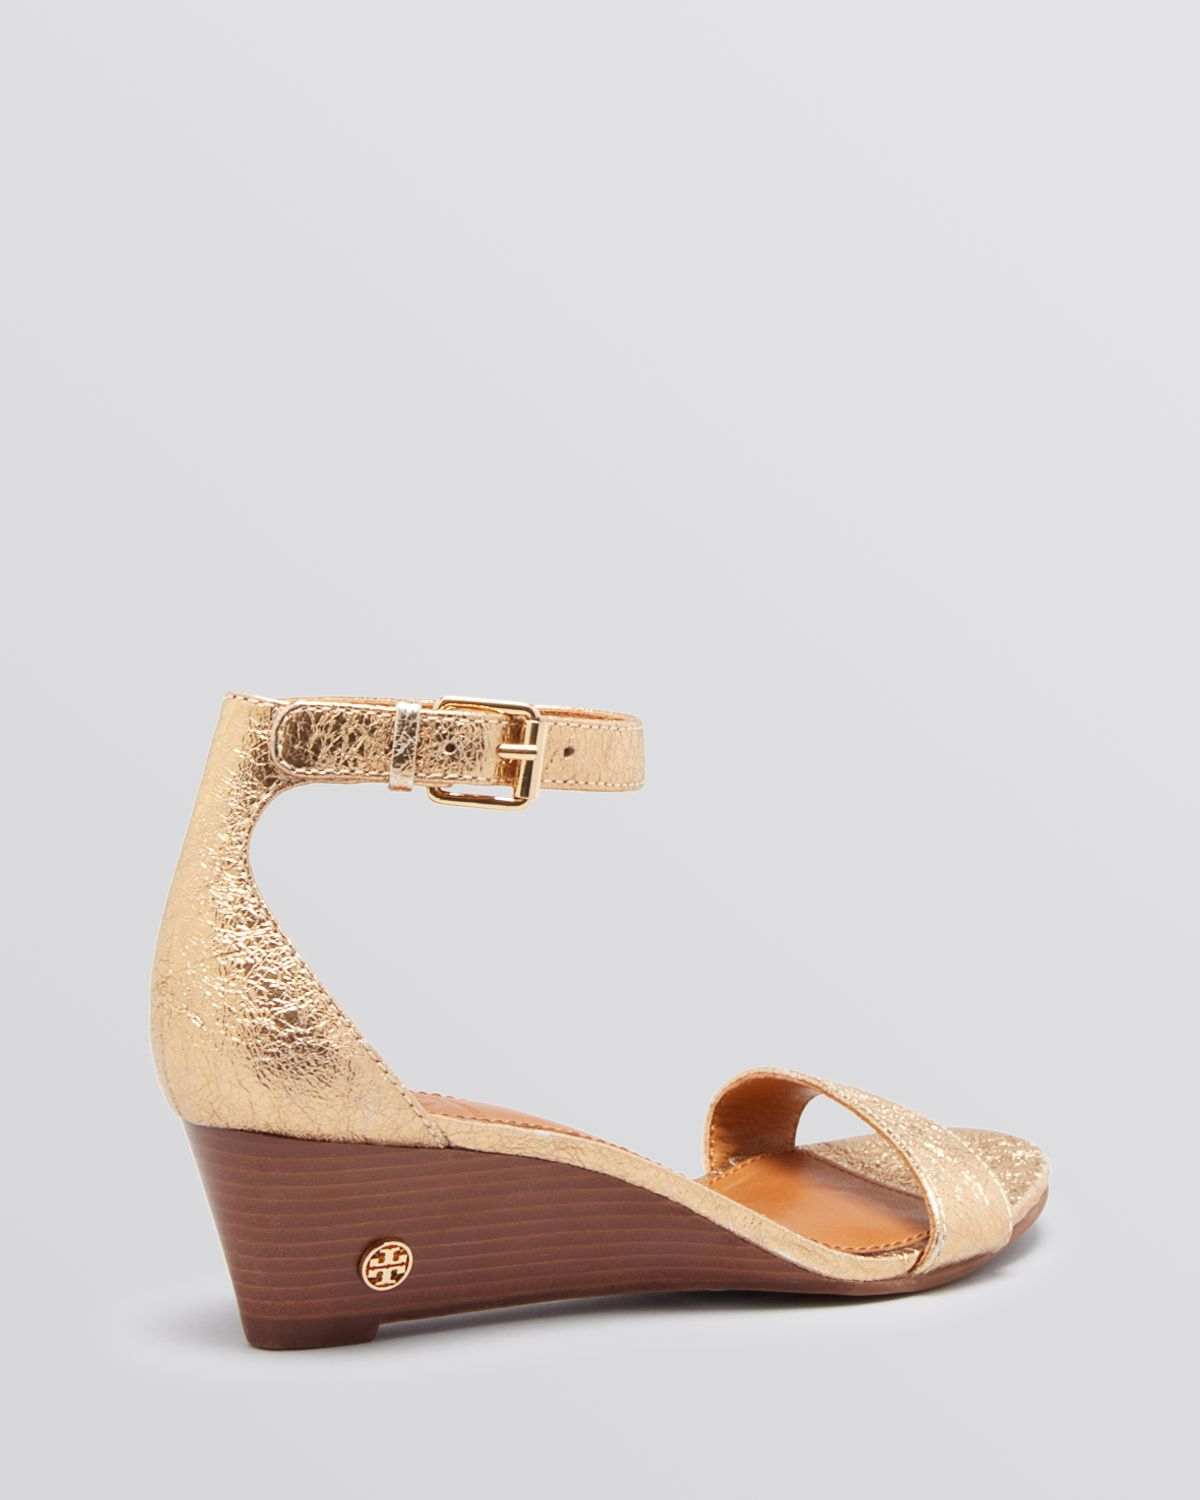 1c0d9d5be83c4 Tory Burch Open Toe Wedge Sandals Savannah in Metallic - Lyst